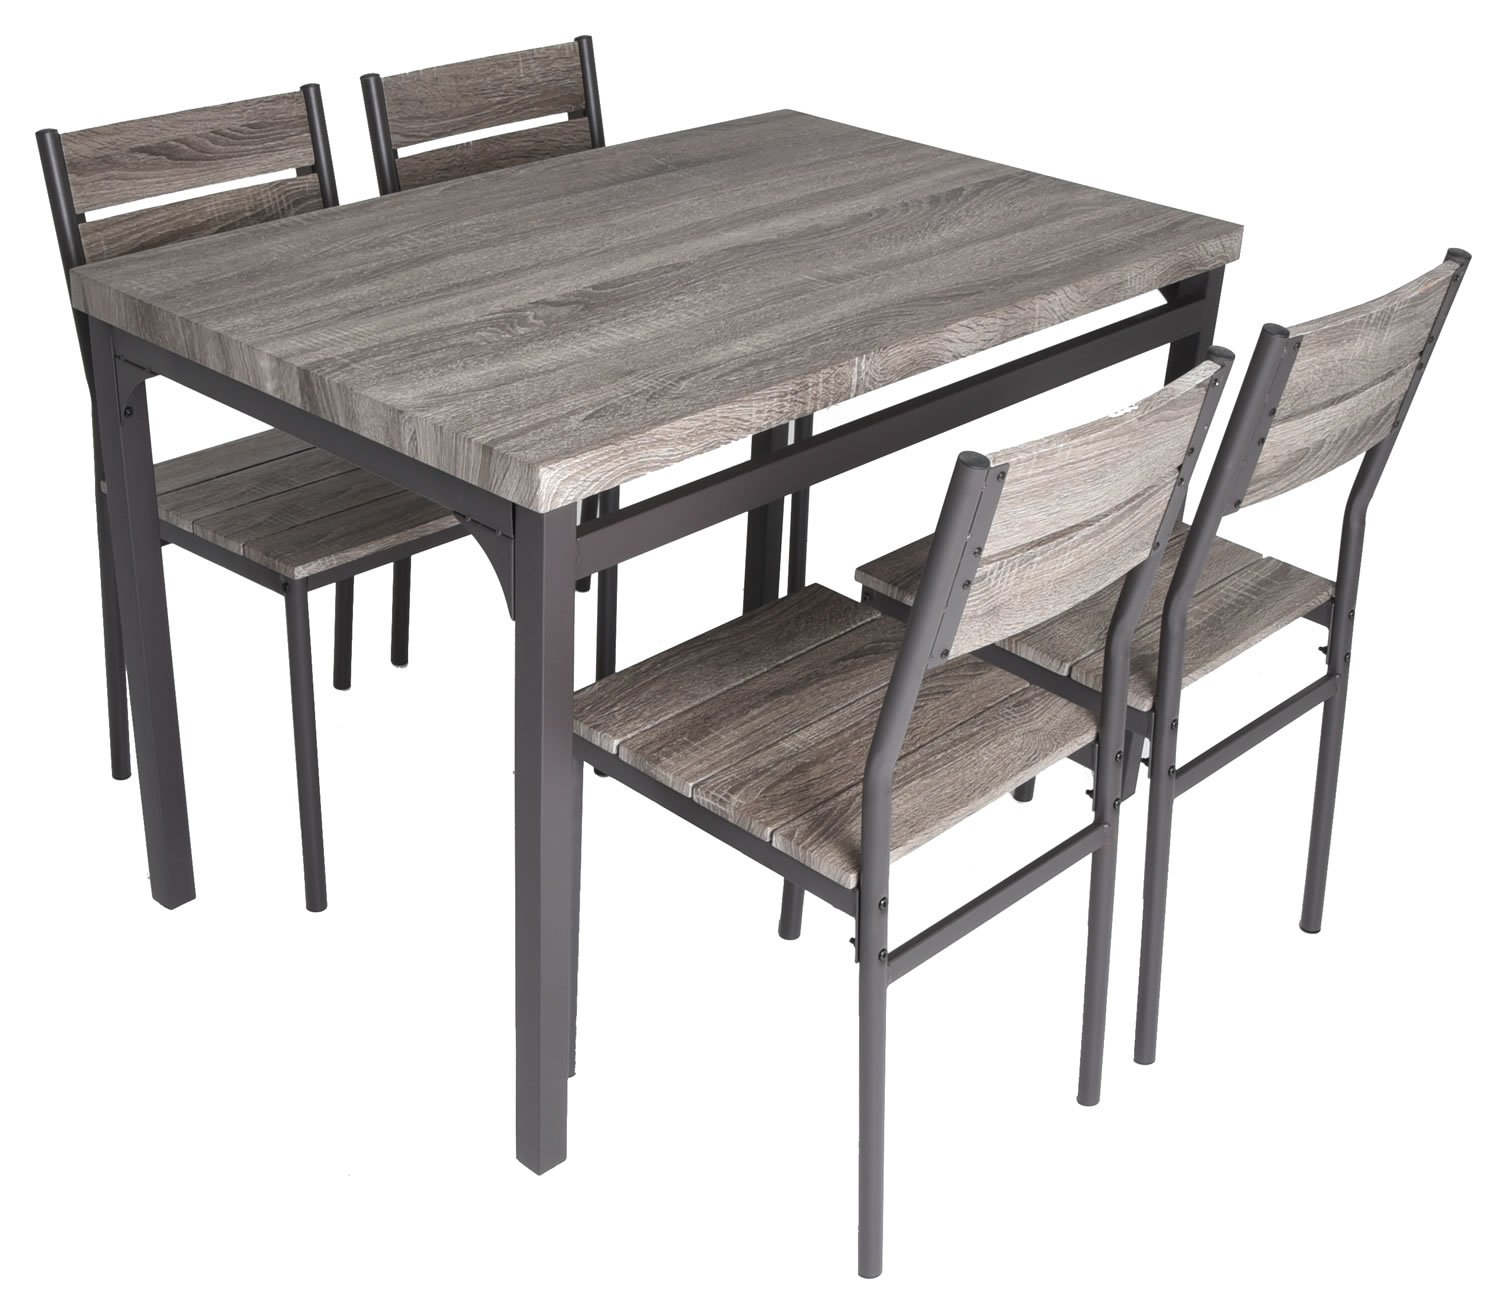 Zenvida 5 Piece Dining Set Rustic Grey Wooden Kitchen Table and 4 Chairs  sc 1 st  Amazon.com & 5 Piece Dining Room Sets: Amazon.com